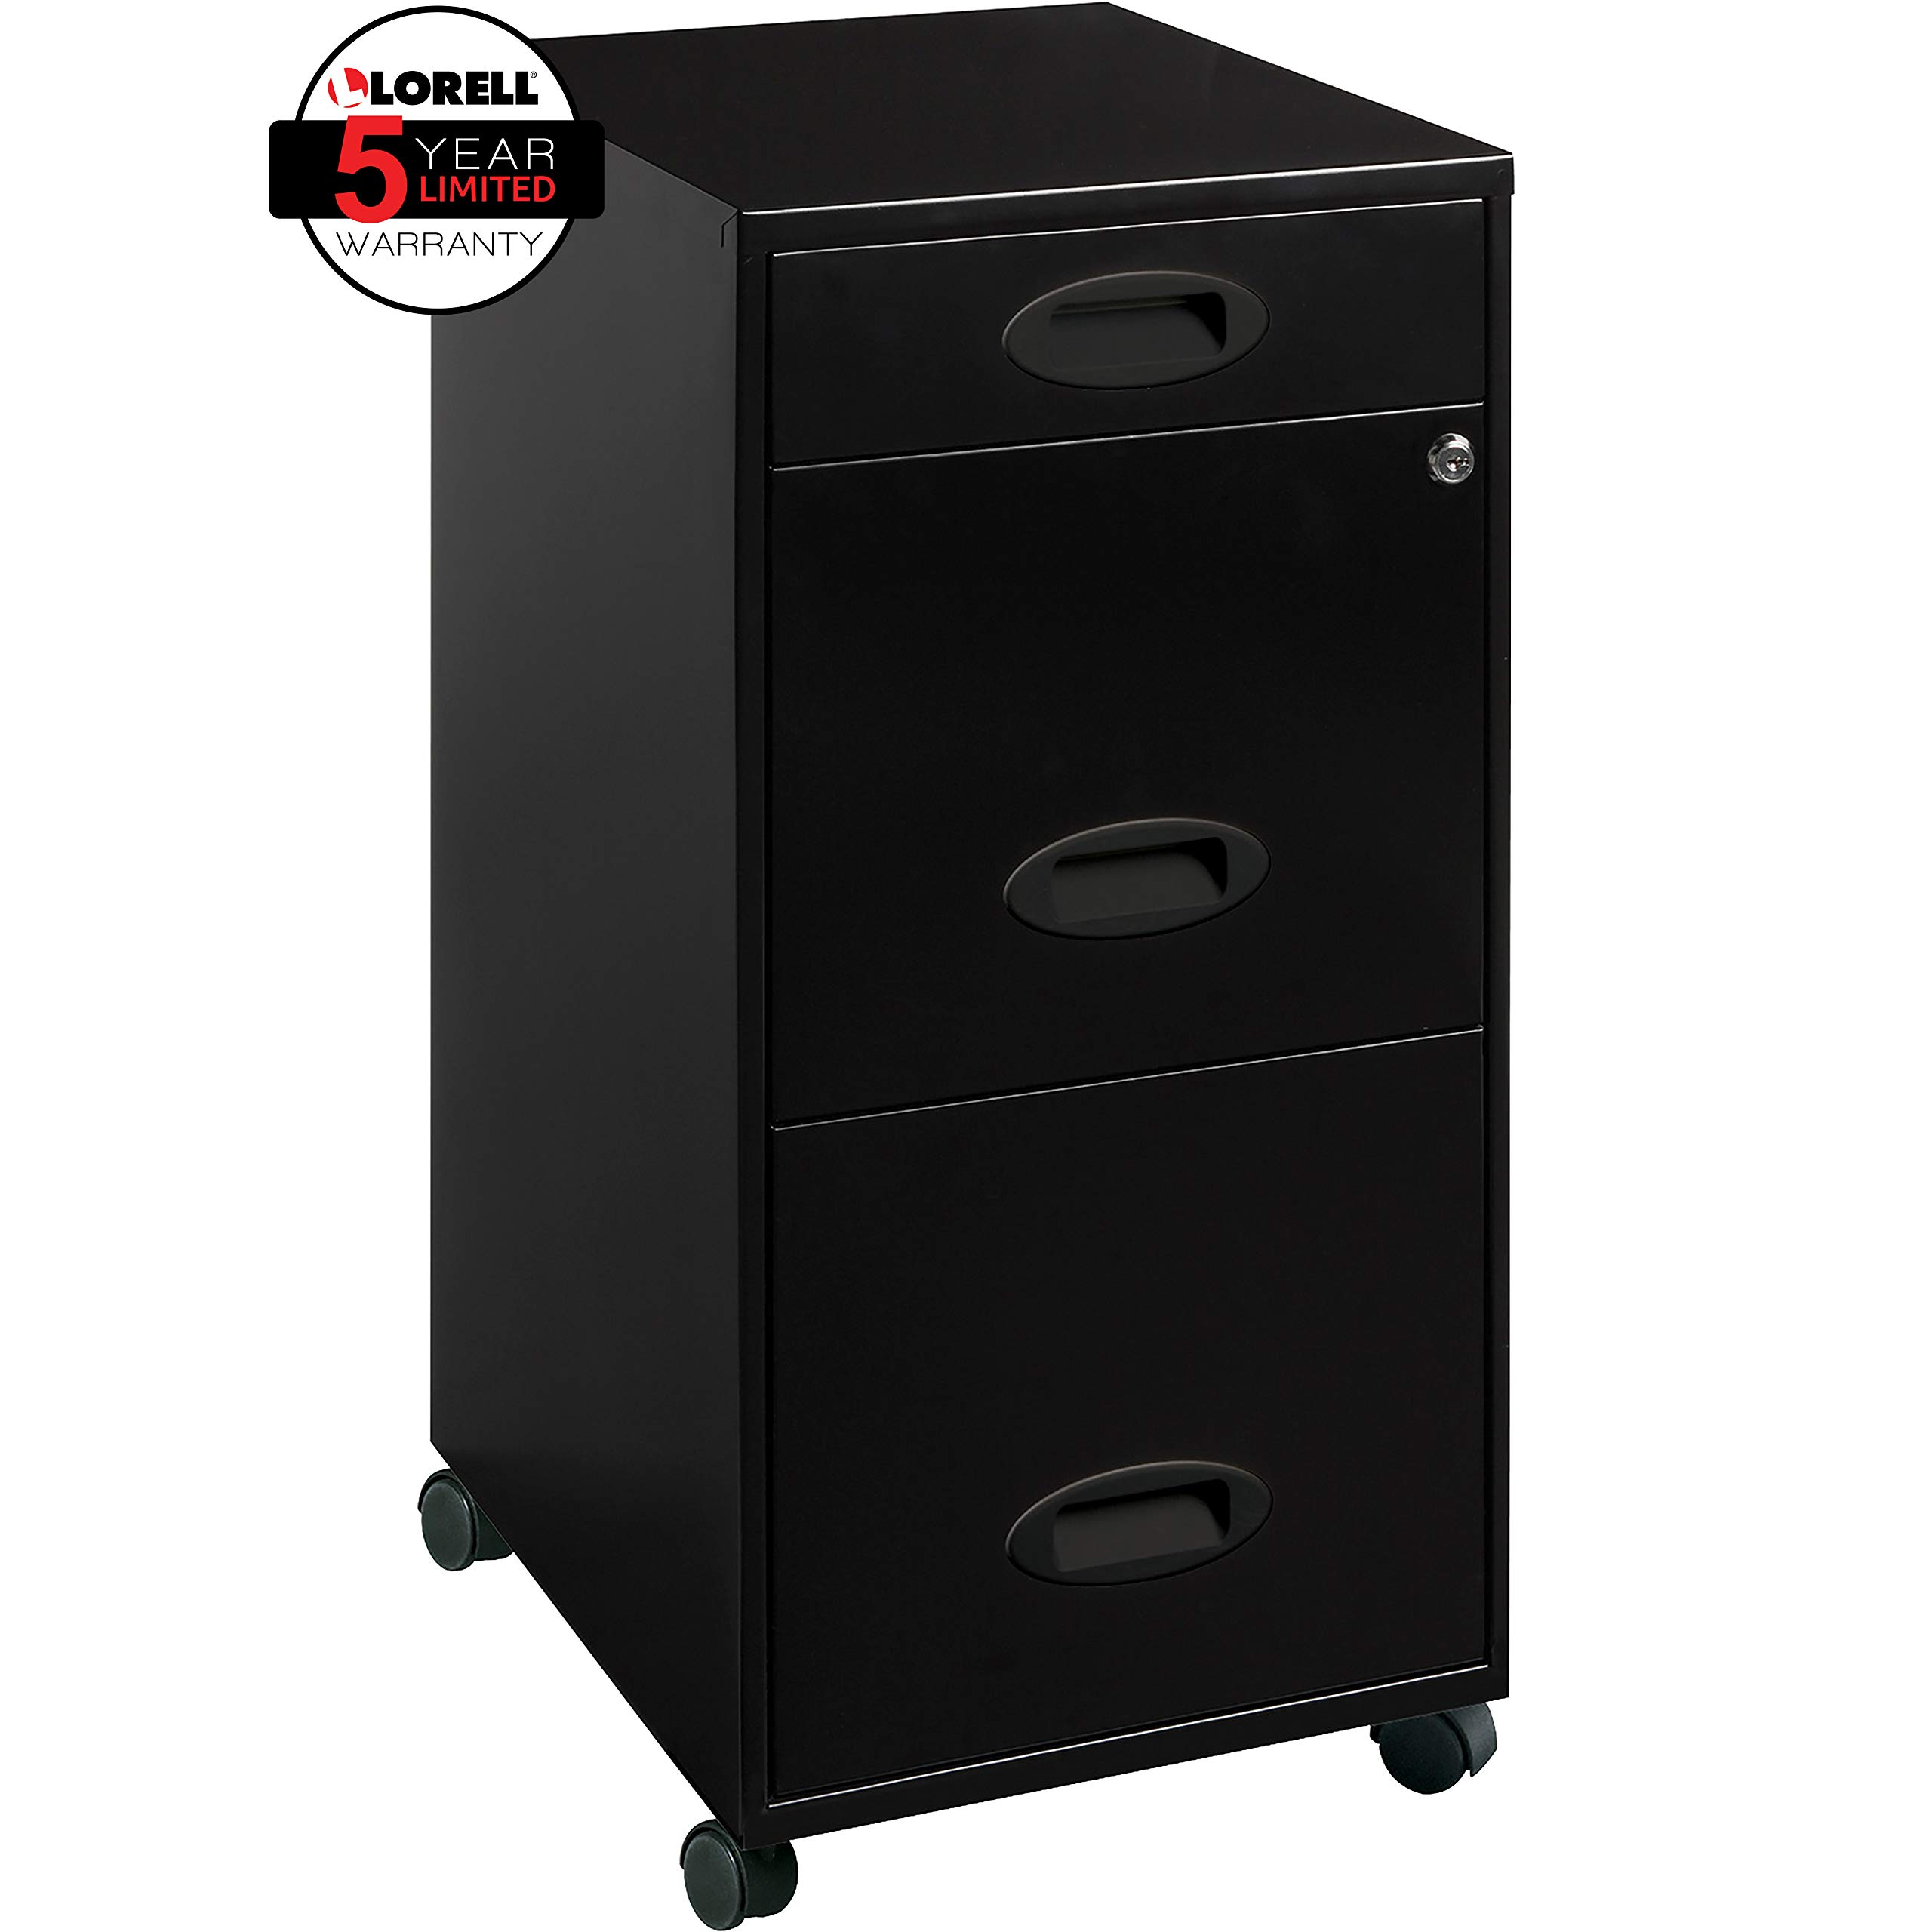 Lorell 17427 3-Drawer Mobile File Cabinet, 18'', 21.80'' L x 18.00'' W x 33.10'' H, Black